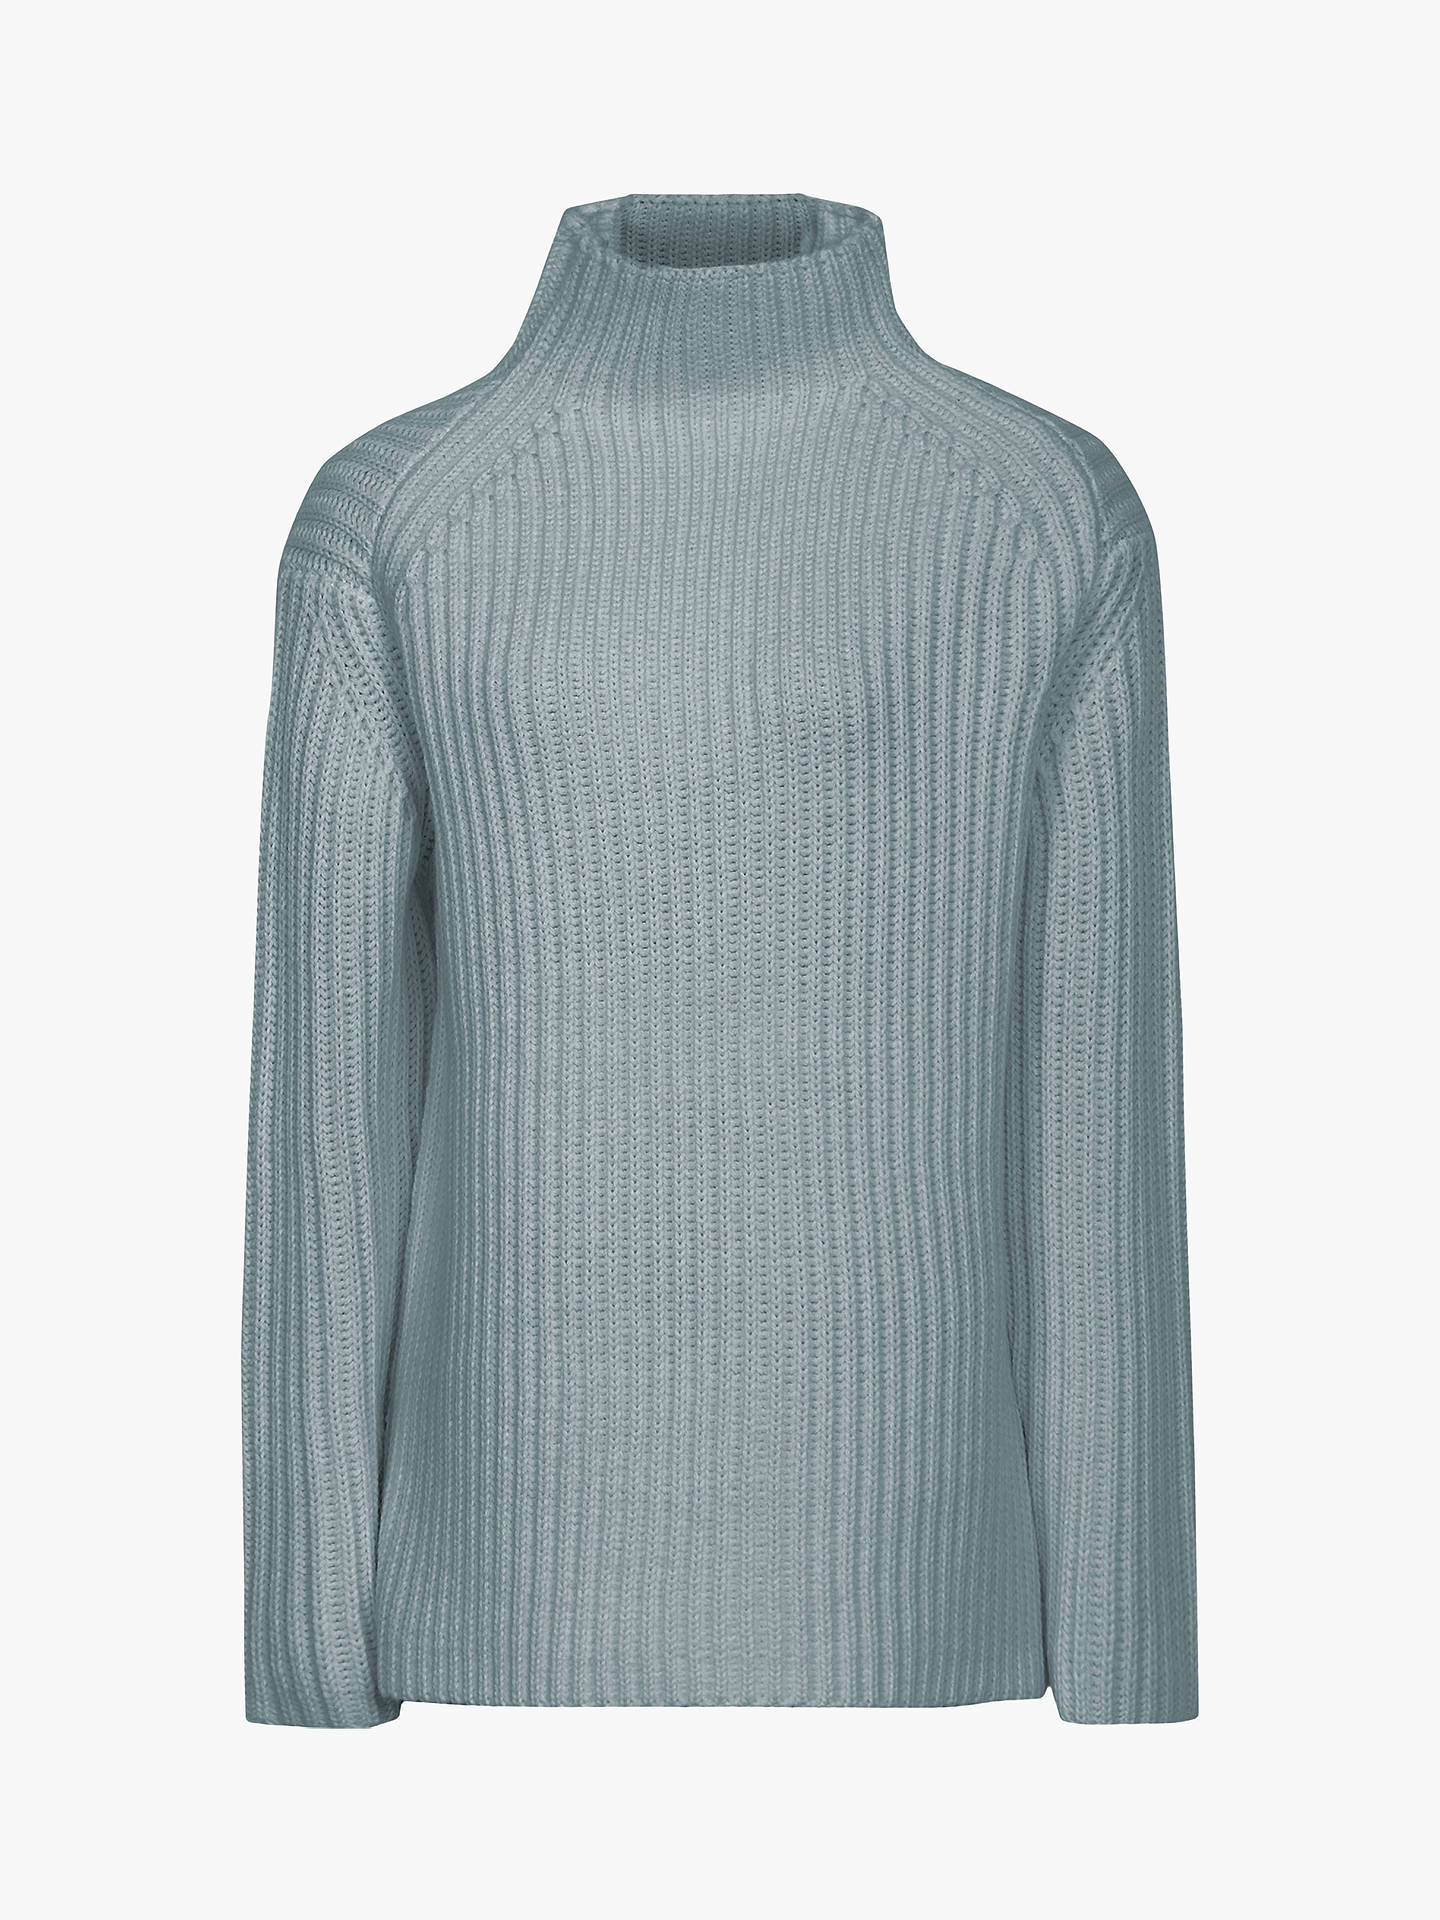 BuyReiss Sonia Chunky Rib Funnel Neck Jumper, Pale Green, S Online at johnlewis.com